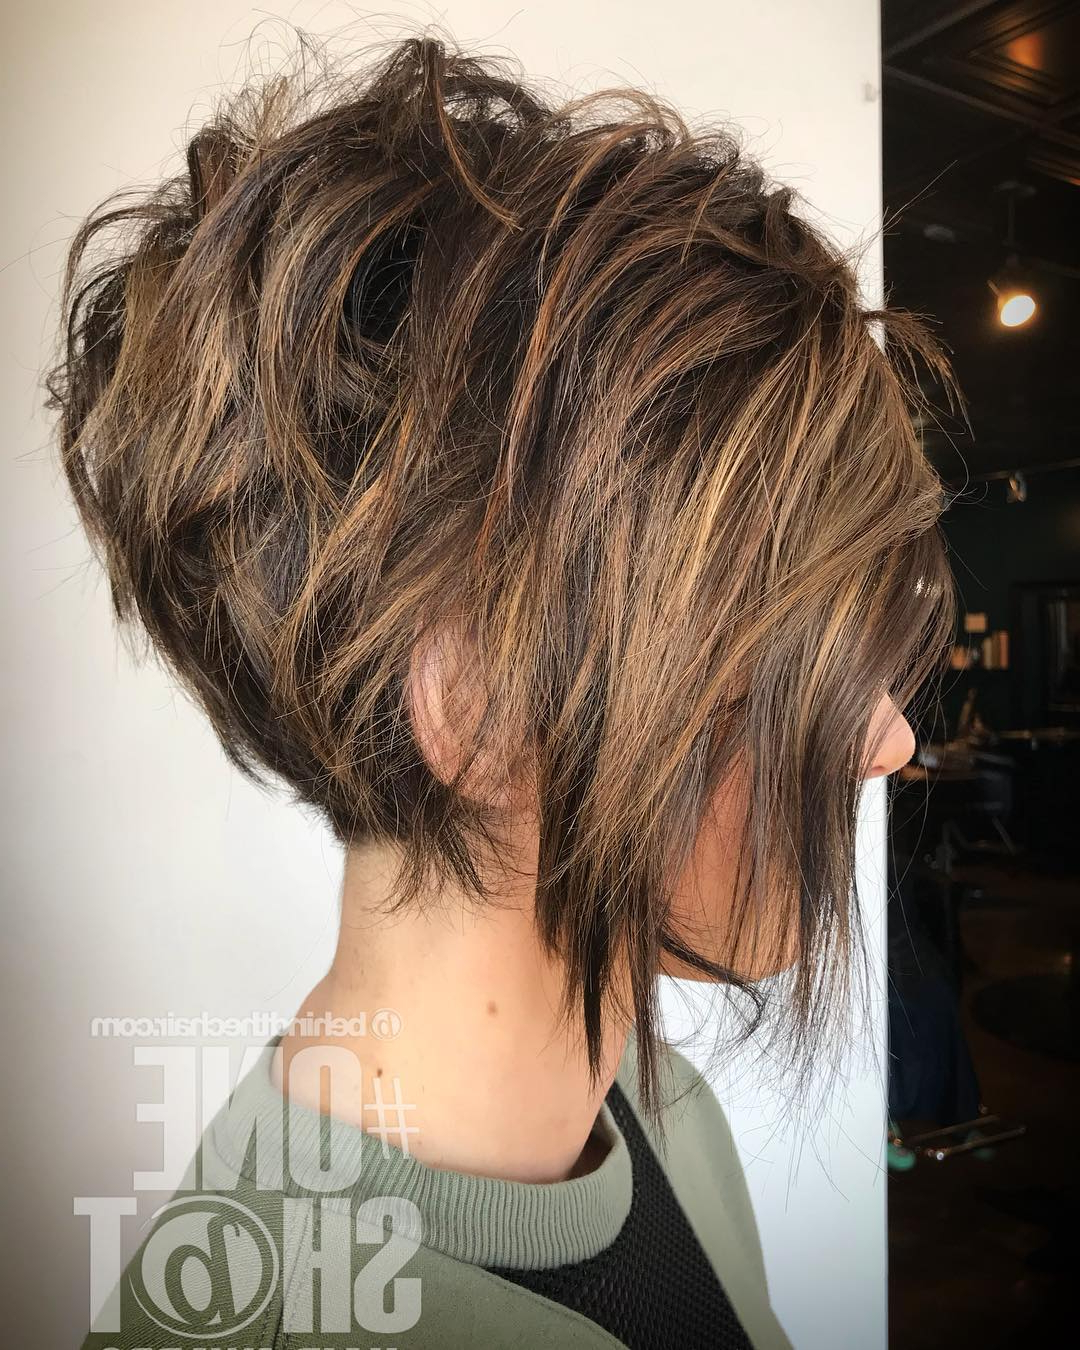 10 Trendy Messy Bob Hairstyles And Haircuts, 2020 Female With Regard To Curly Messy Bob Hairstyles With Side Bangs (View 14 of 20)